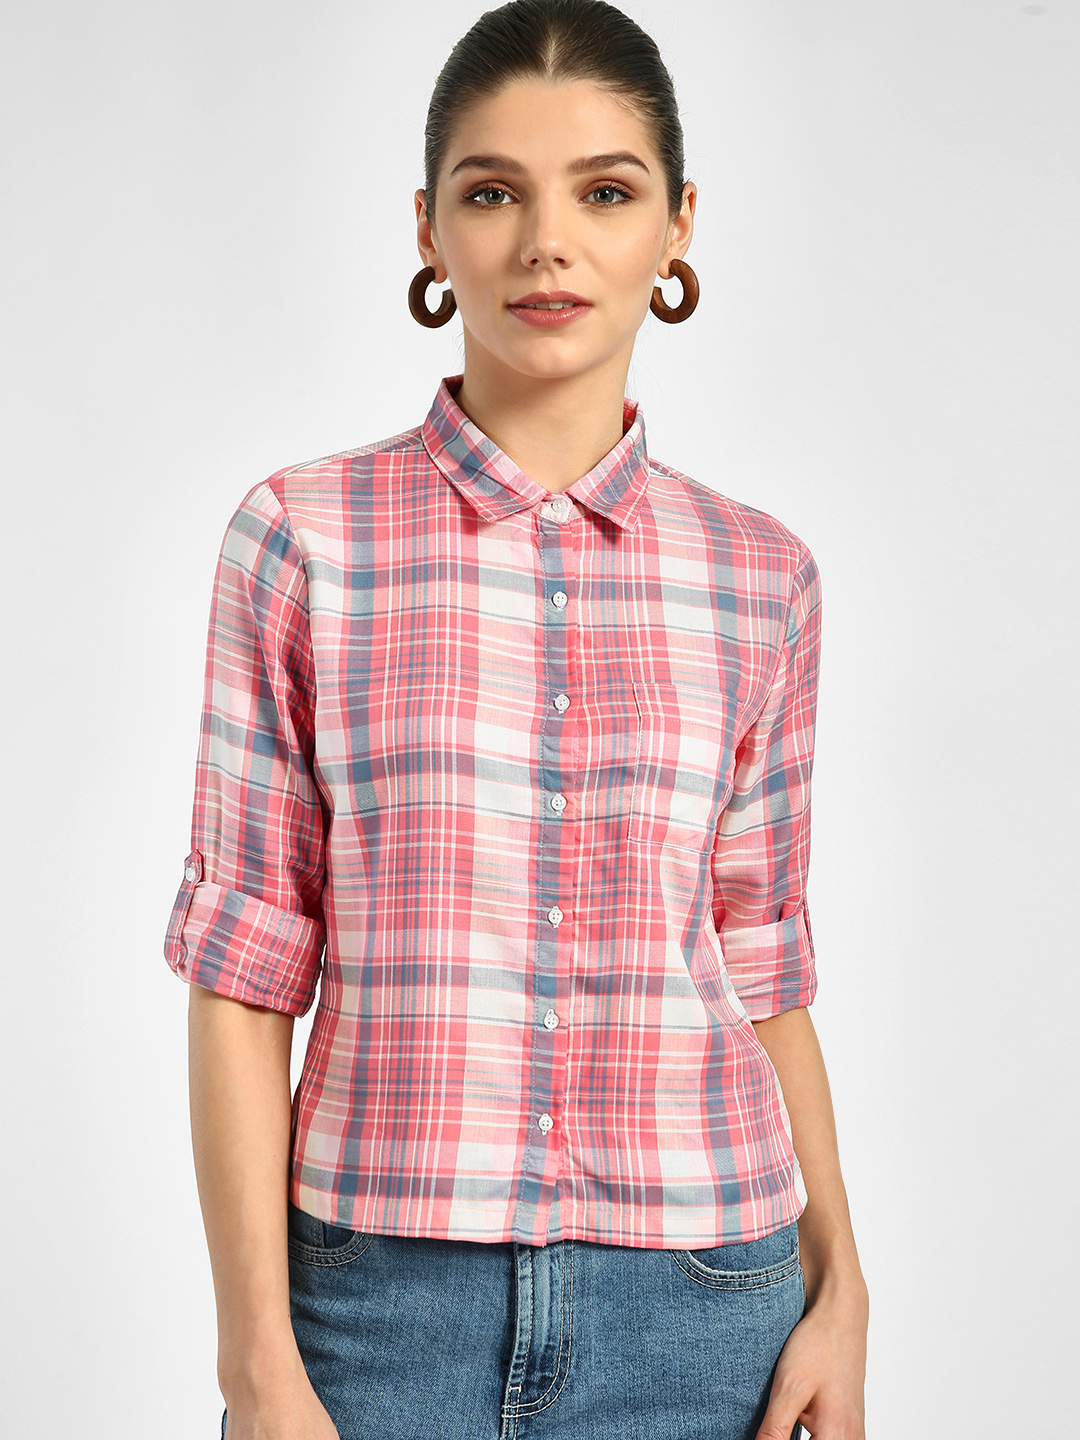 Lee Cooper Pink Checkered Roll-Up Sleeve Shirt 1